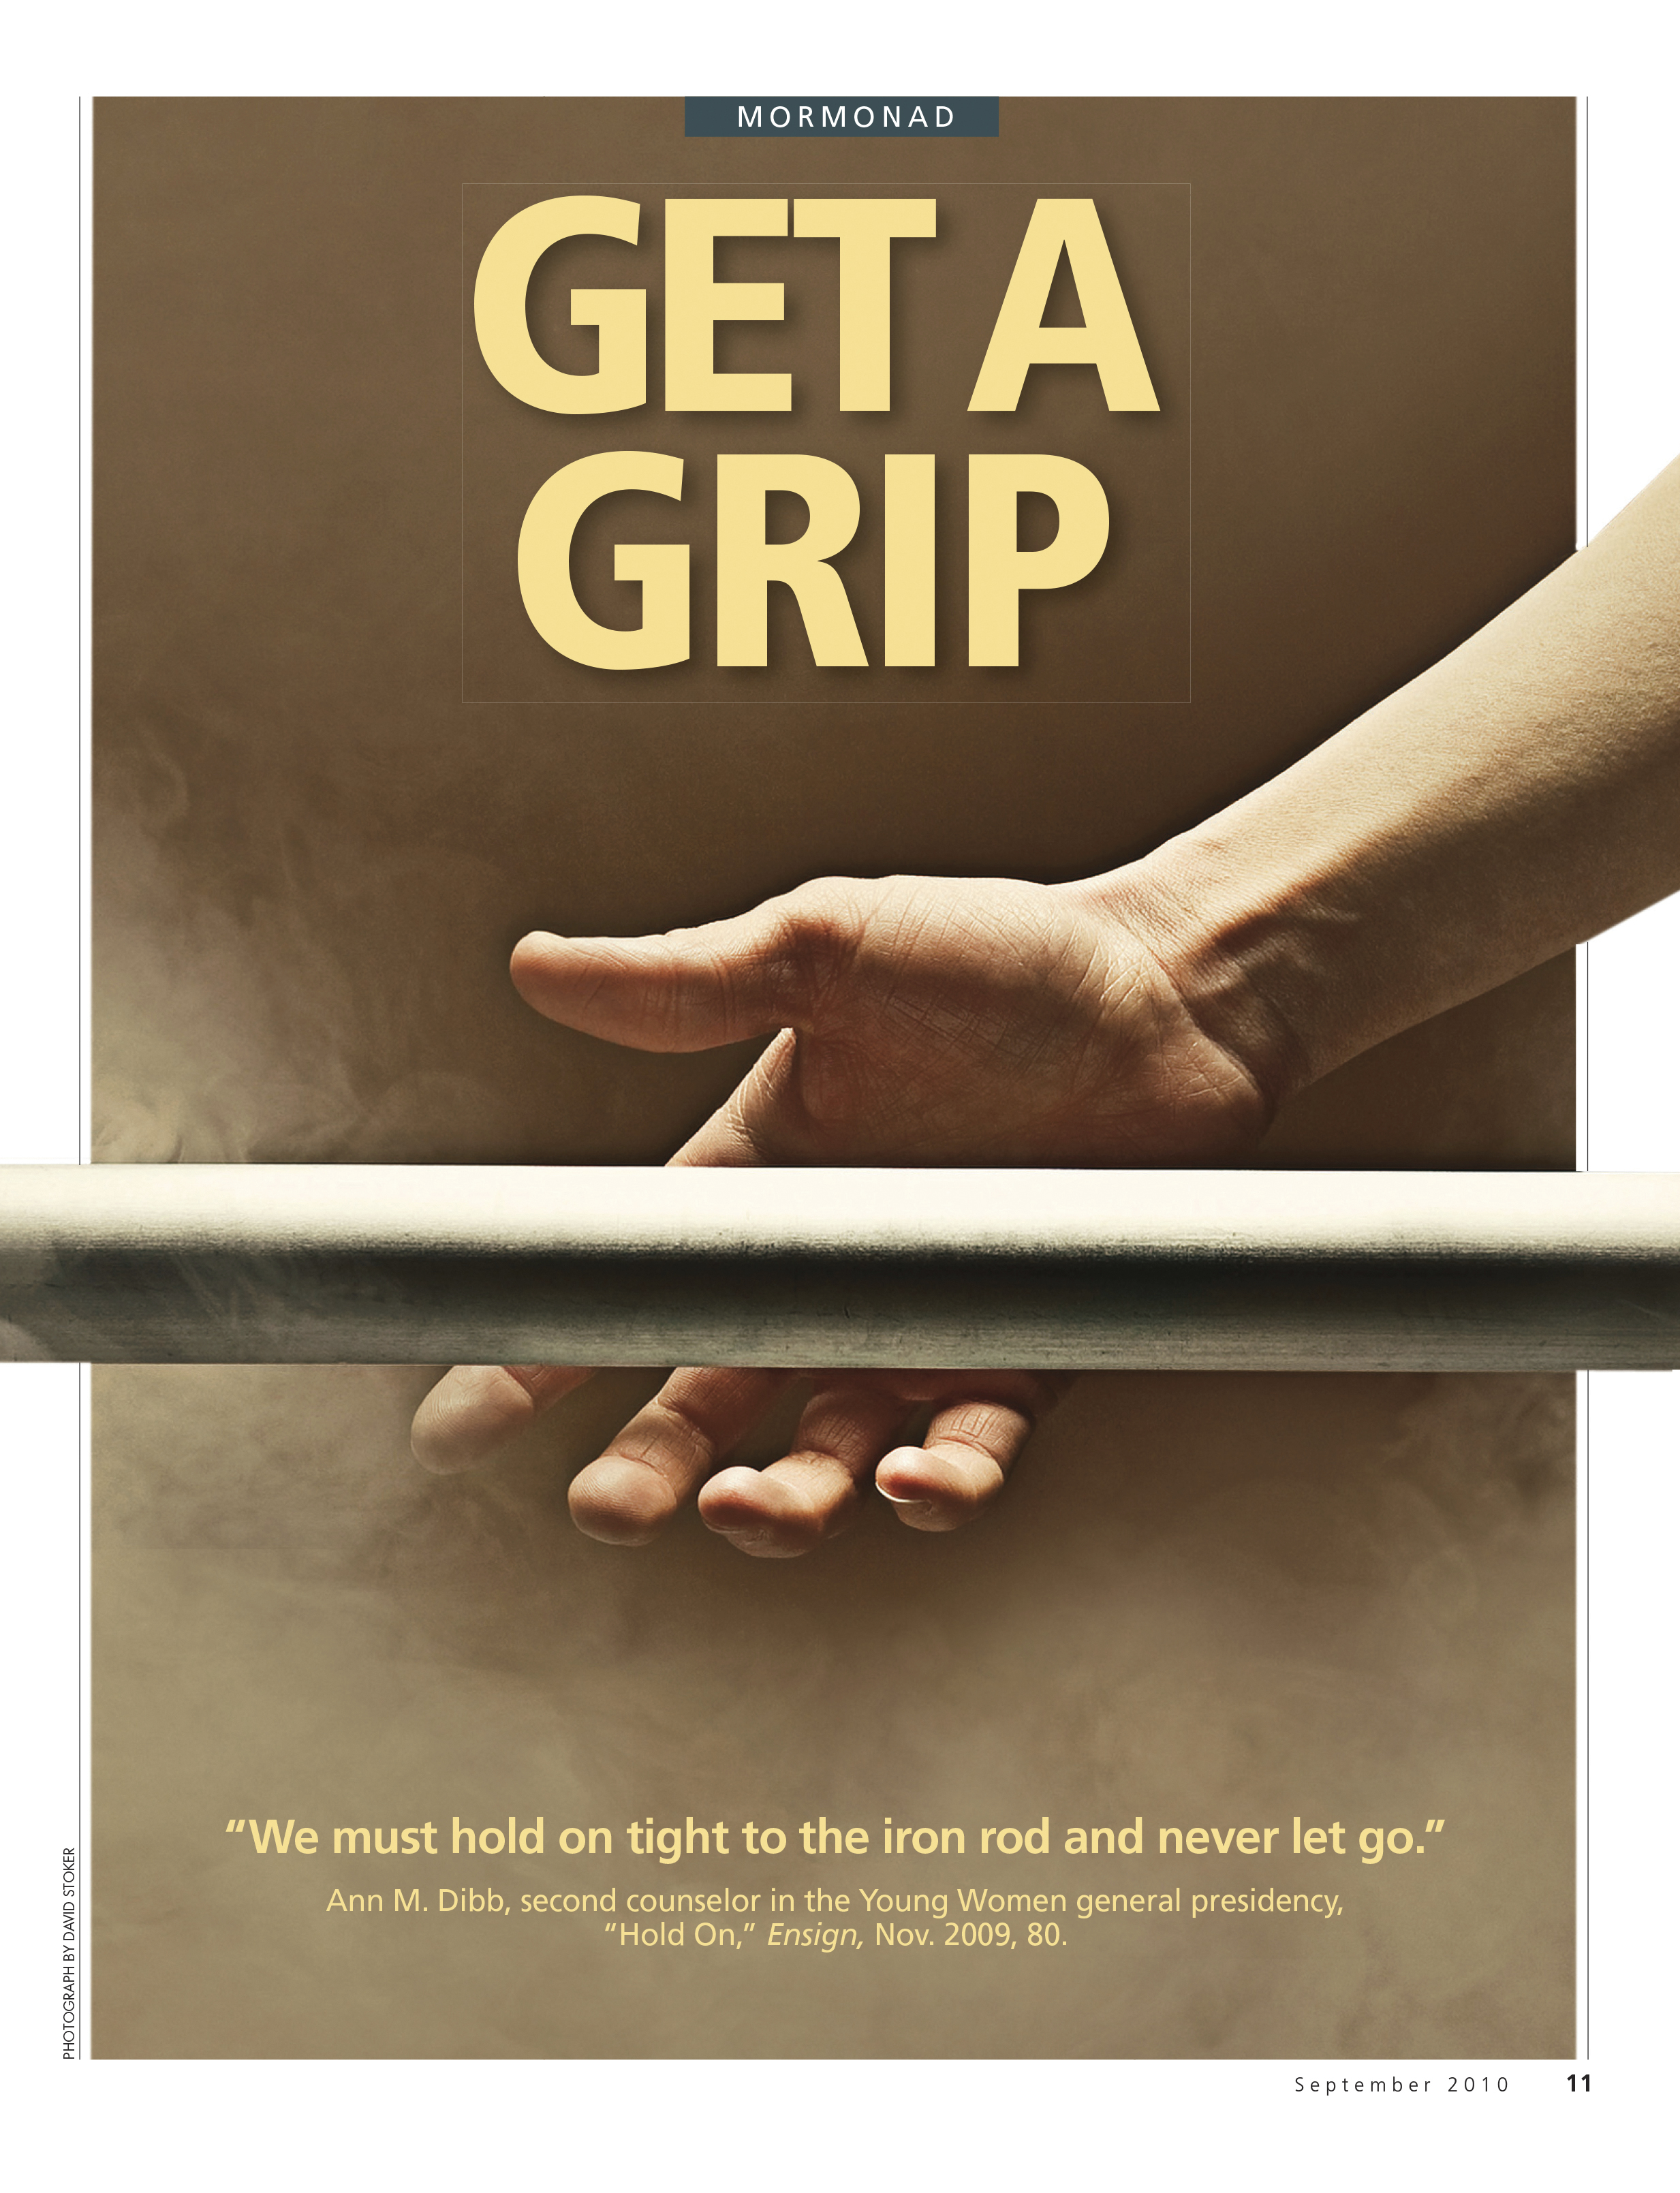 "Get a Grip. ""We must hold on tight to the iron rod and never let go."" Ann M. Dibb, second counselor in the Young Women general presidency, ""Hold On,"" Ensign, Nov. 2009, 80. Sept. 2010 © undefined ipCode 1."